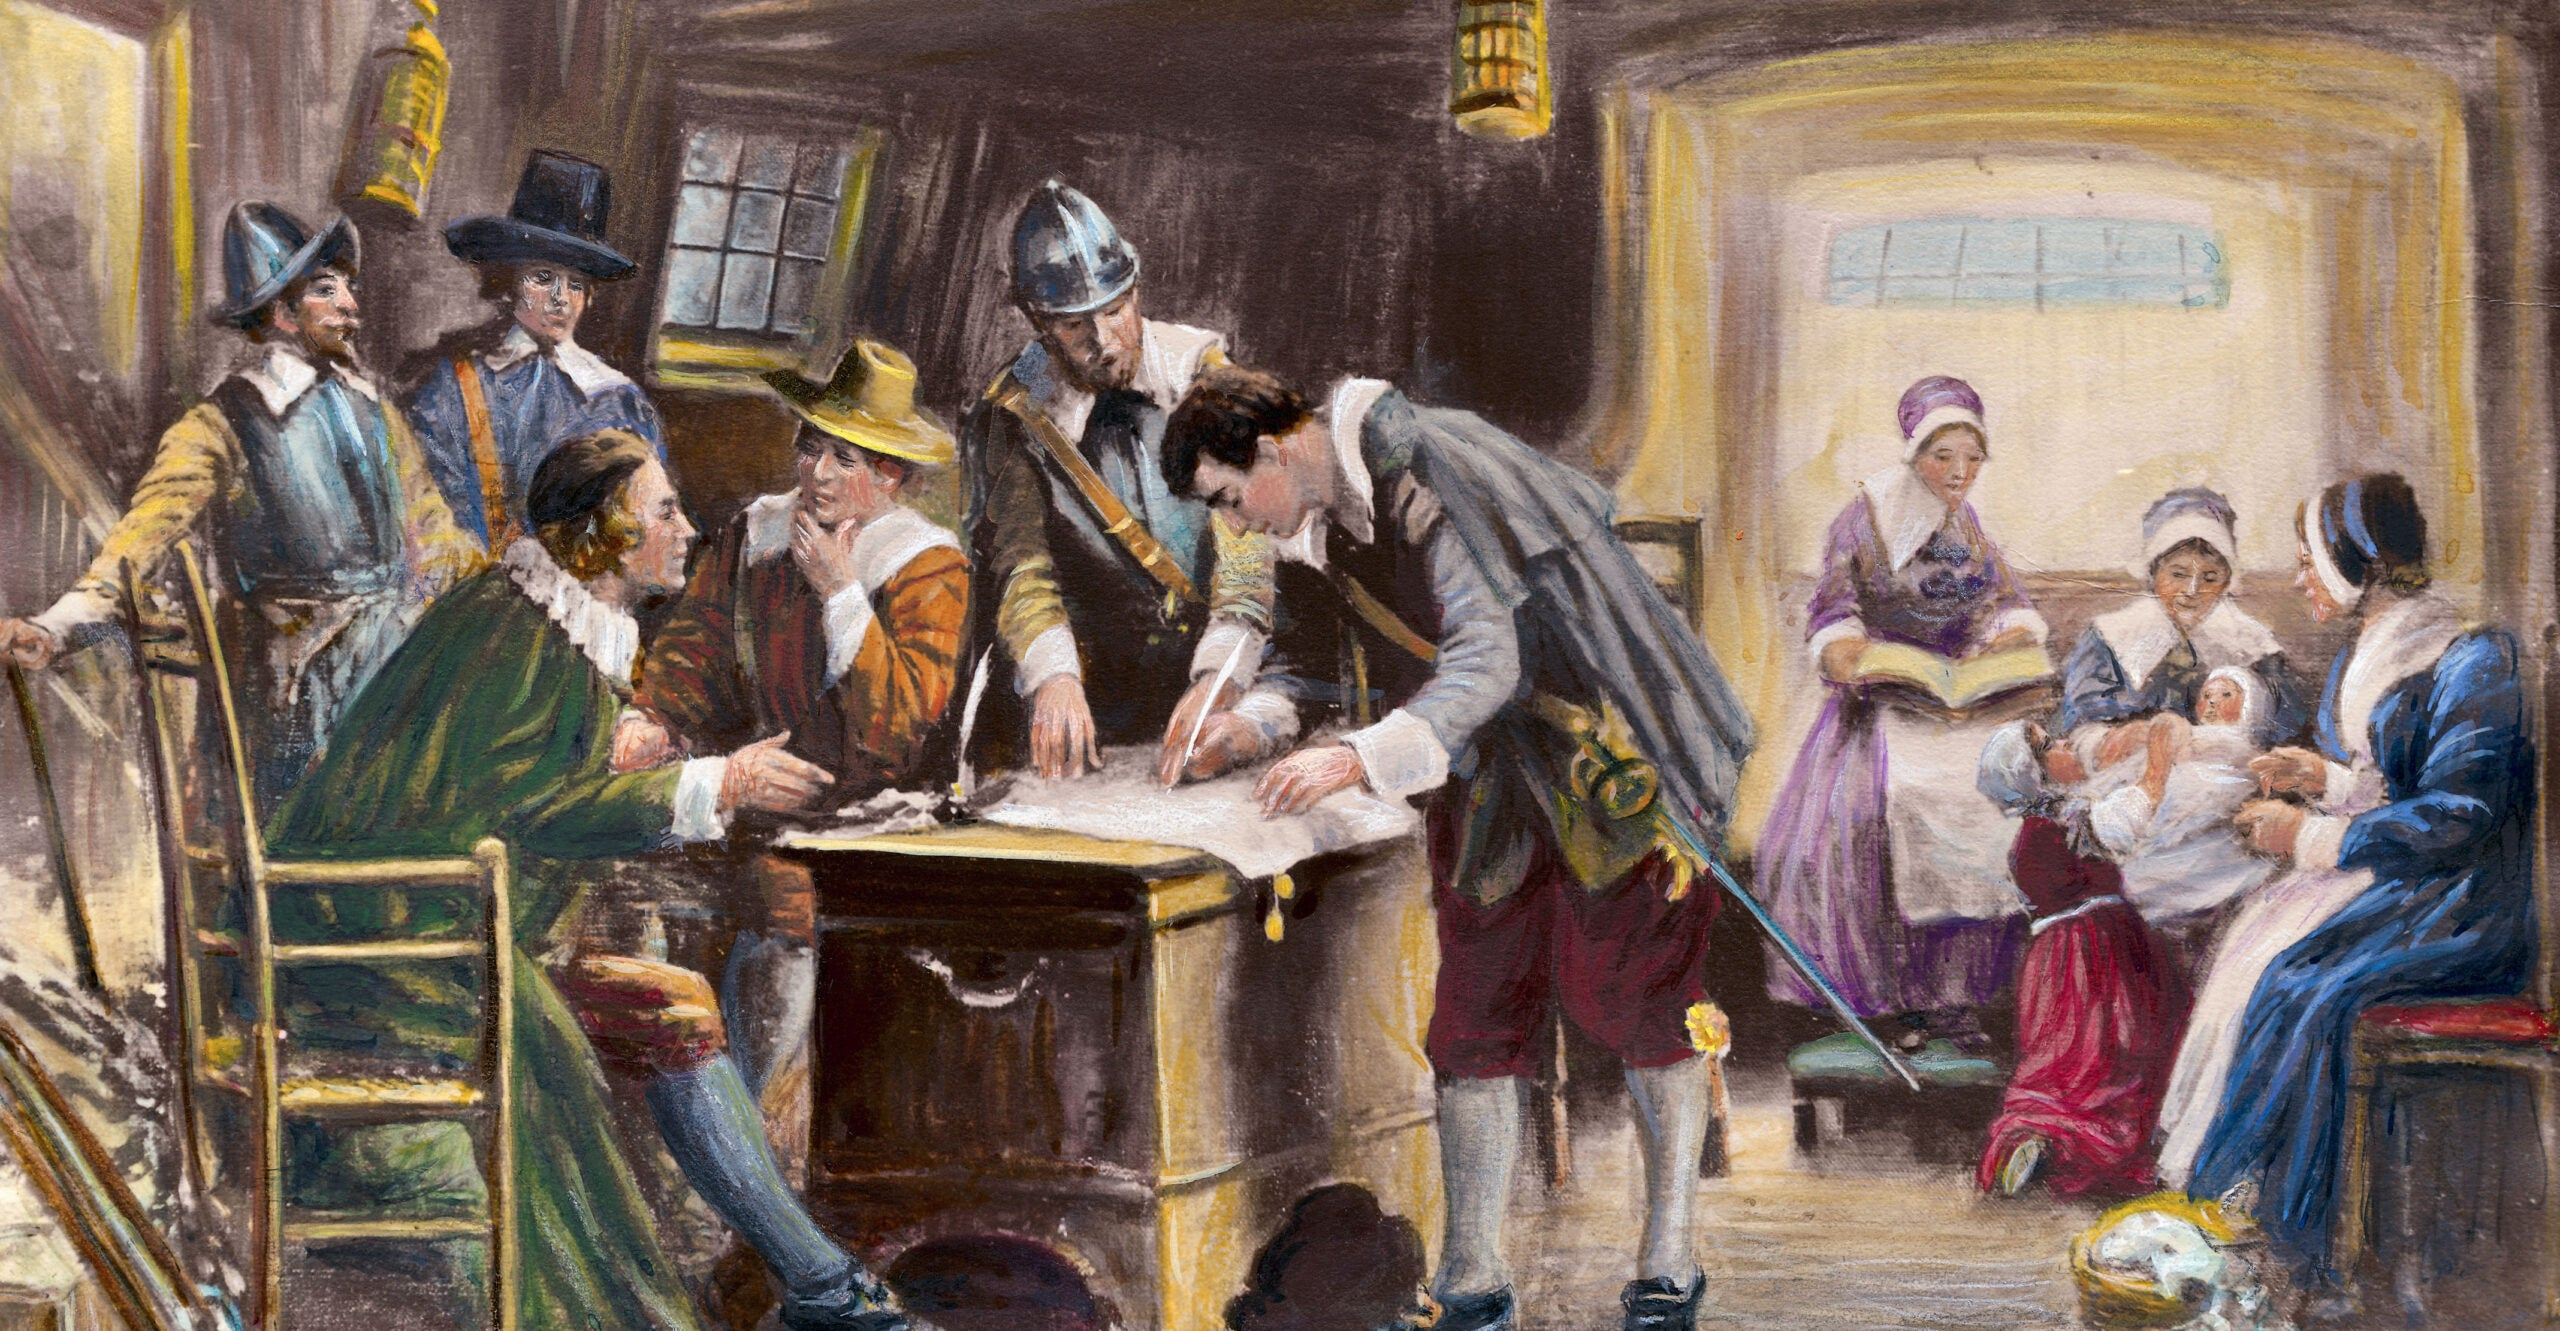 How Mayflower Compact Influenced the American Concept of Rule of Law